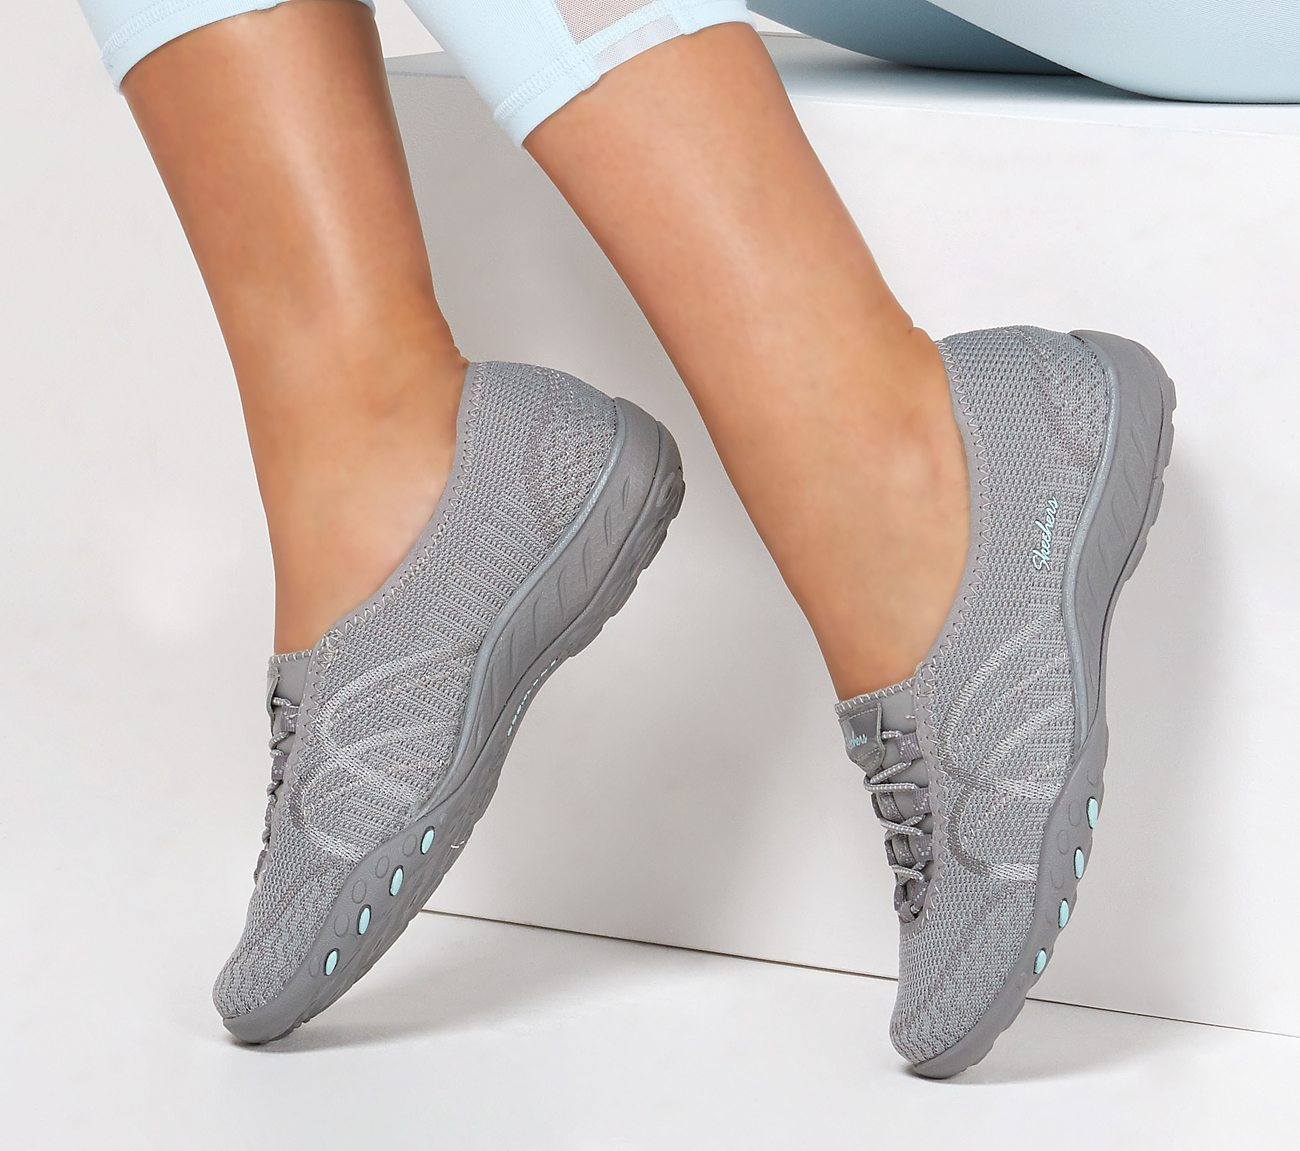 c97d31ecaded8 Buy SKECHERS Relaxed Fit: Breathe Easy - Sweet Jam Active Shoes only ...